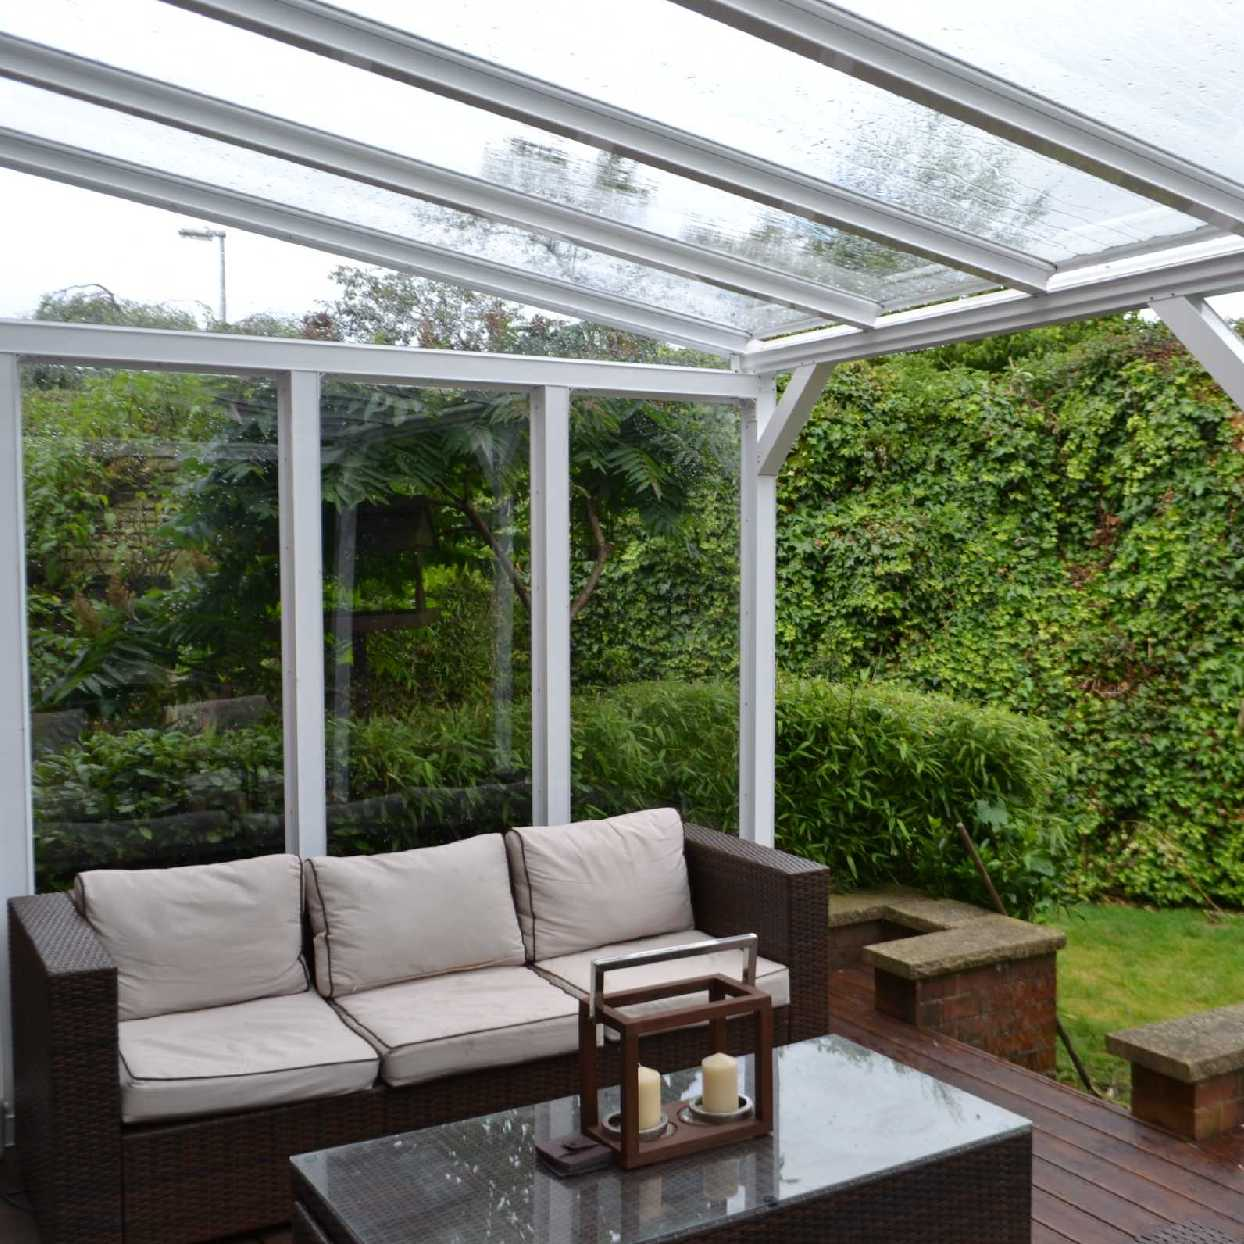 Omega Smart Lean-To Canopy with 6mm Glass Clear Plate Polycarbonate Glazing - 7.0m (W) x 3.5m (P), (4) Supporting Posts